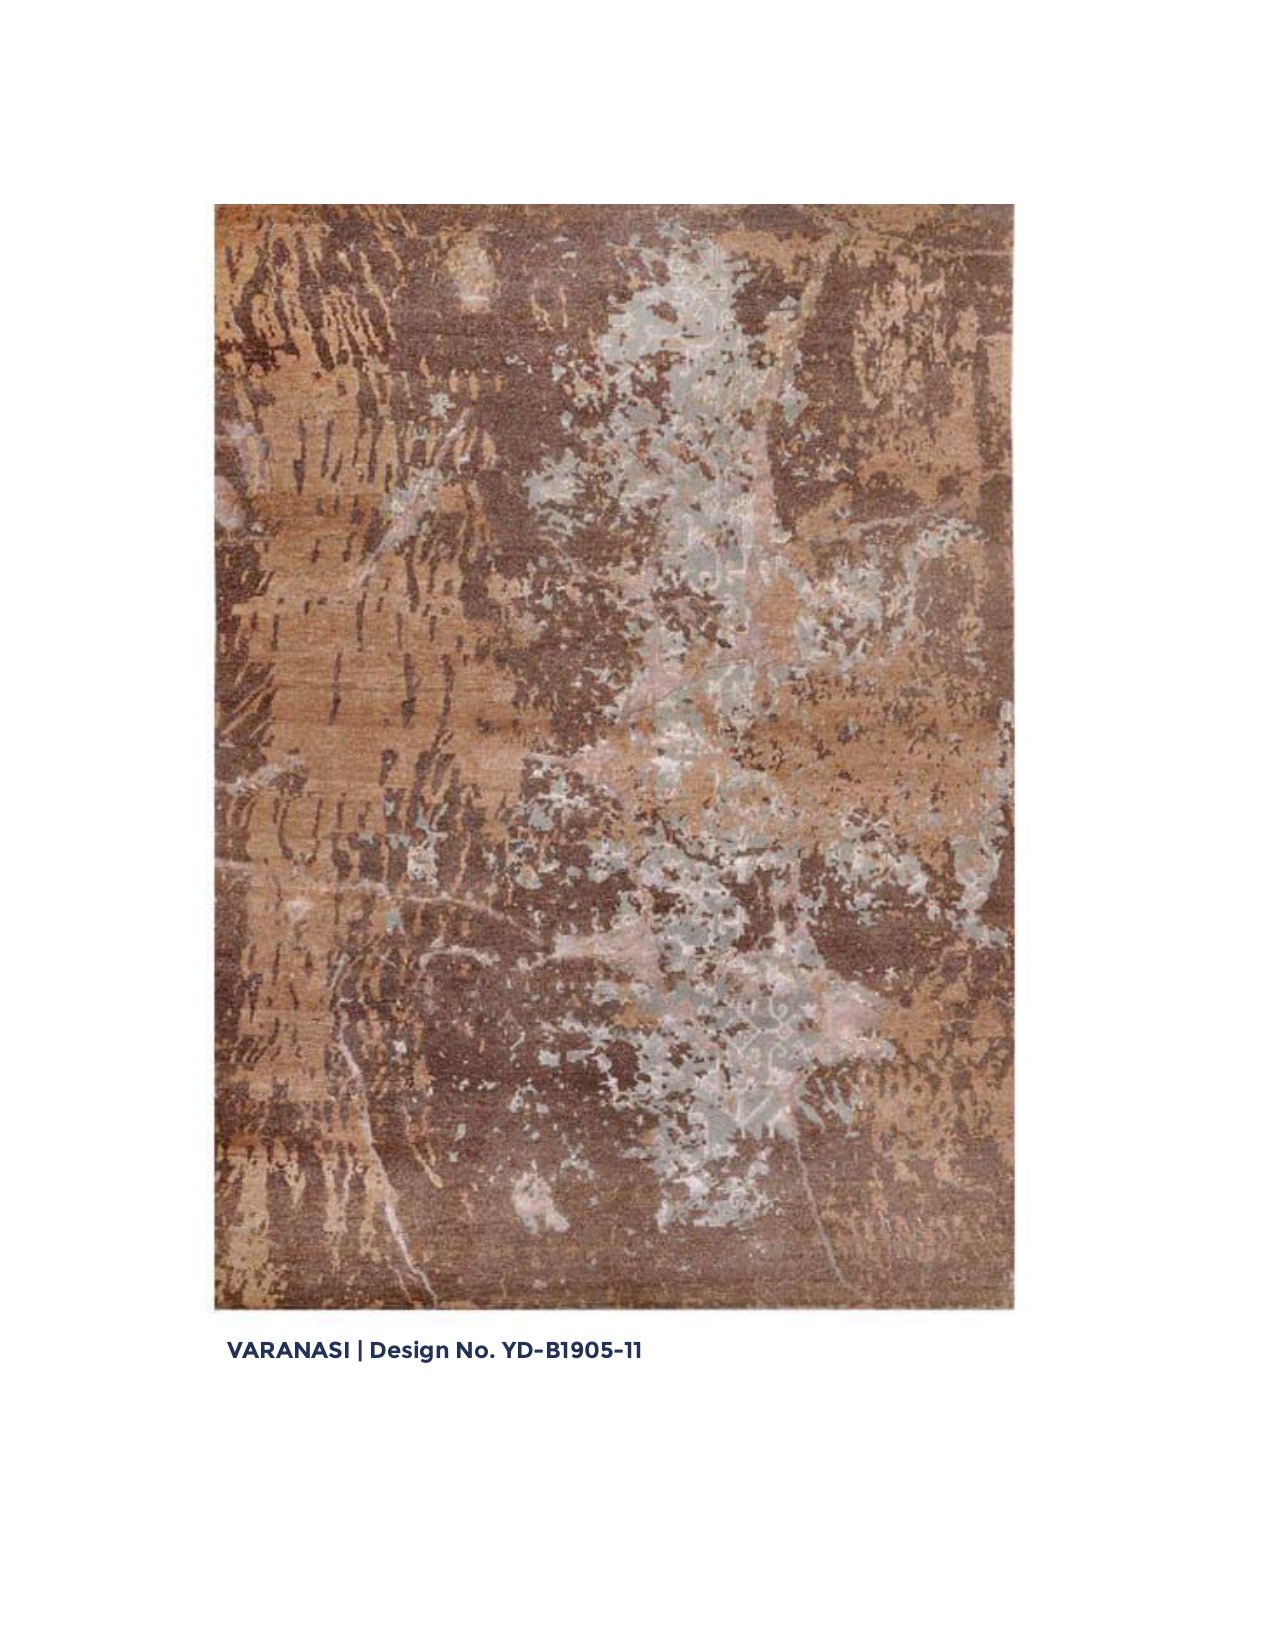 Hand_Knotted_CC_1905_16.jpg